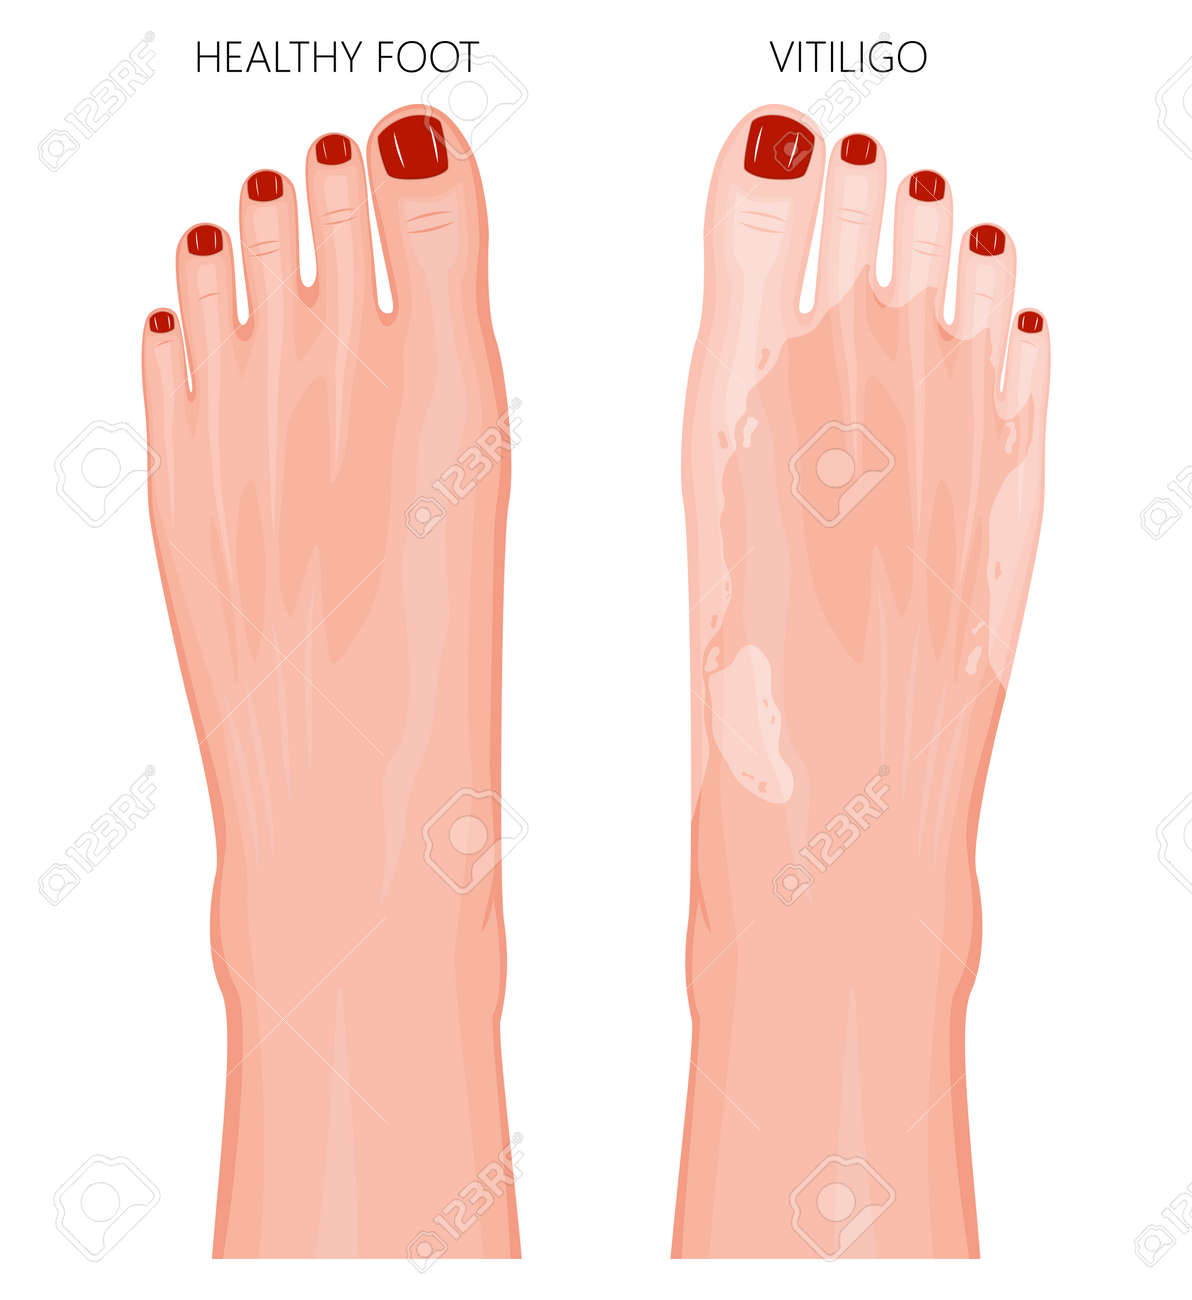 Vector Illustration Of A Healthy Foot With Red Toenails And